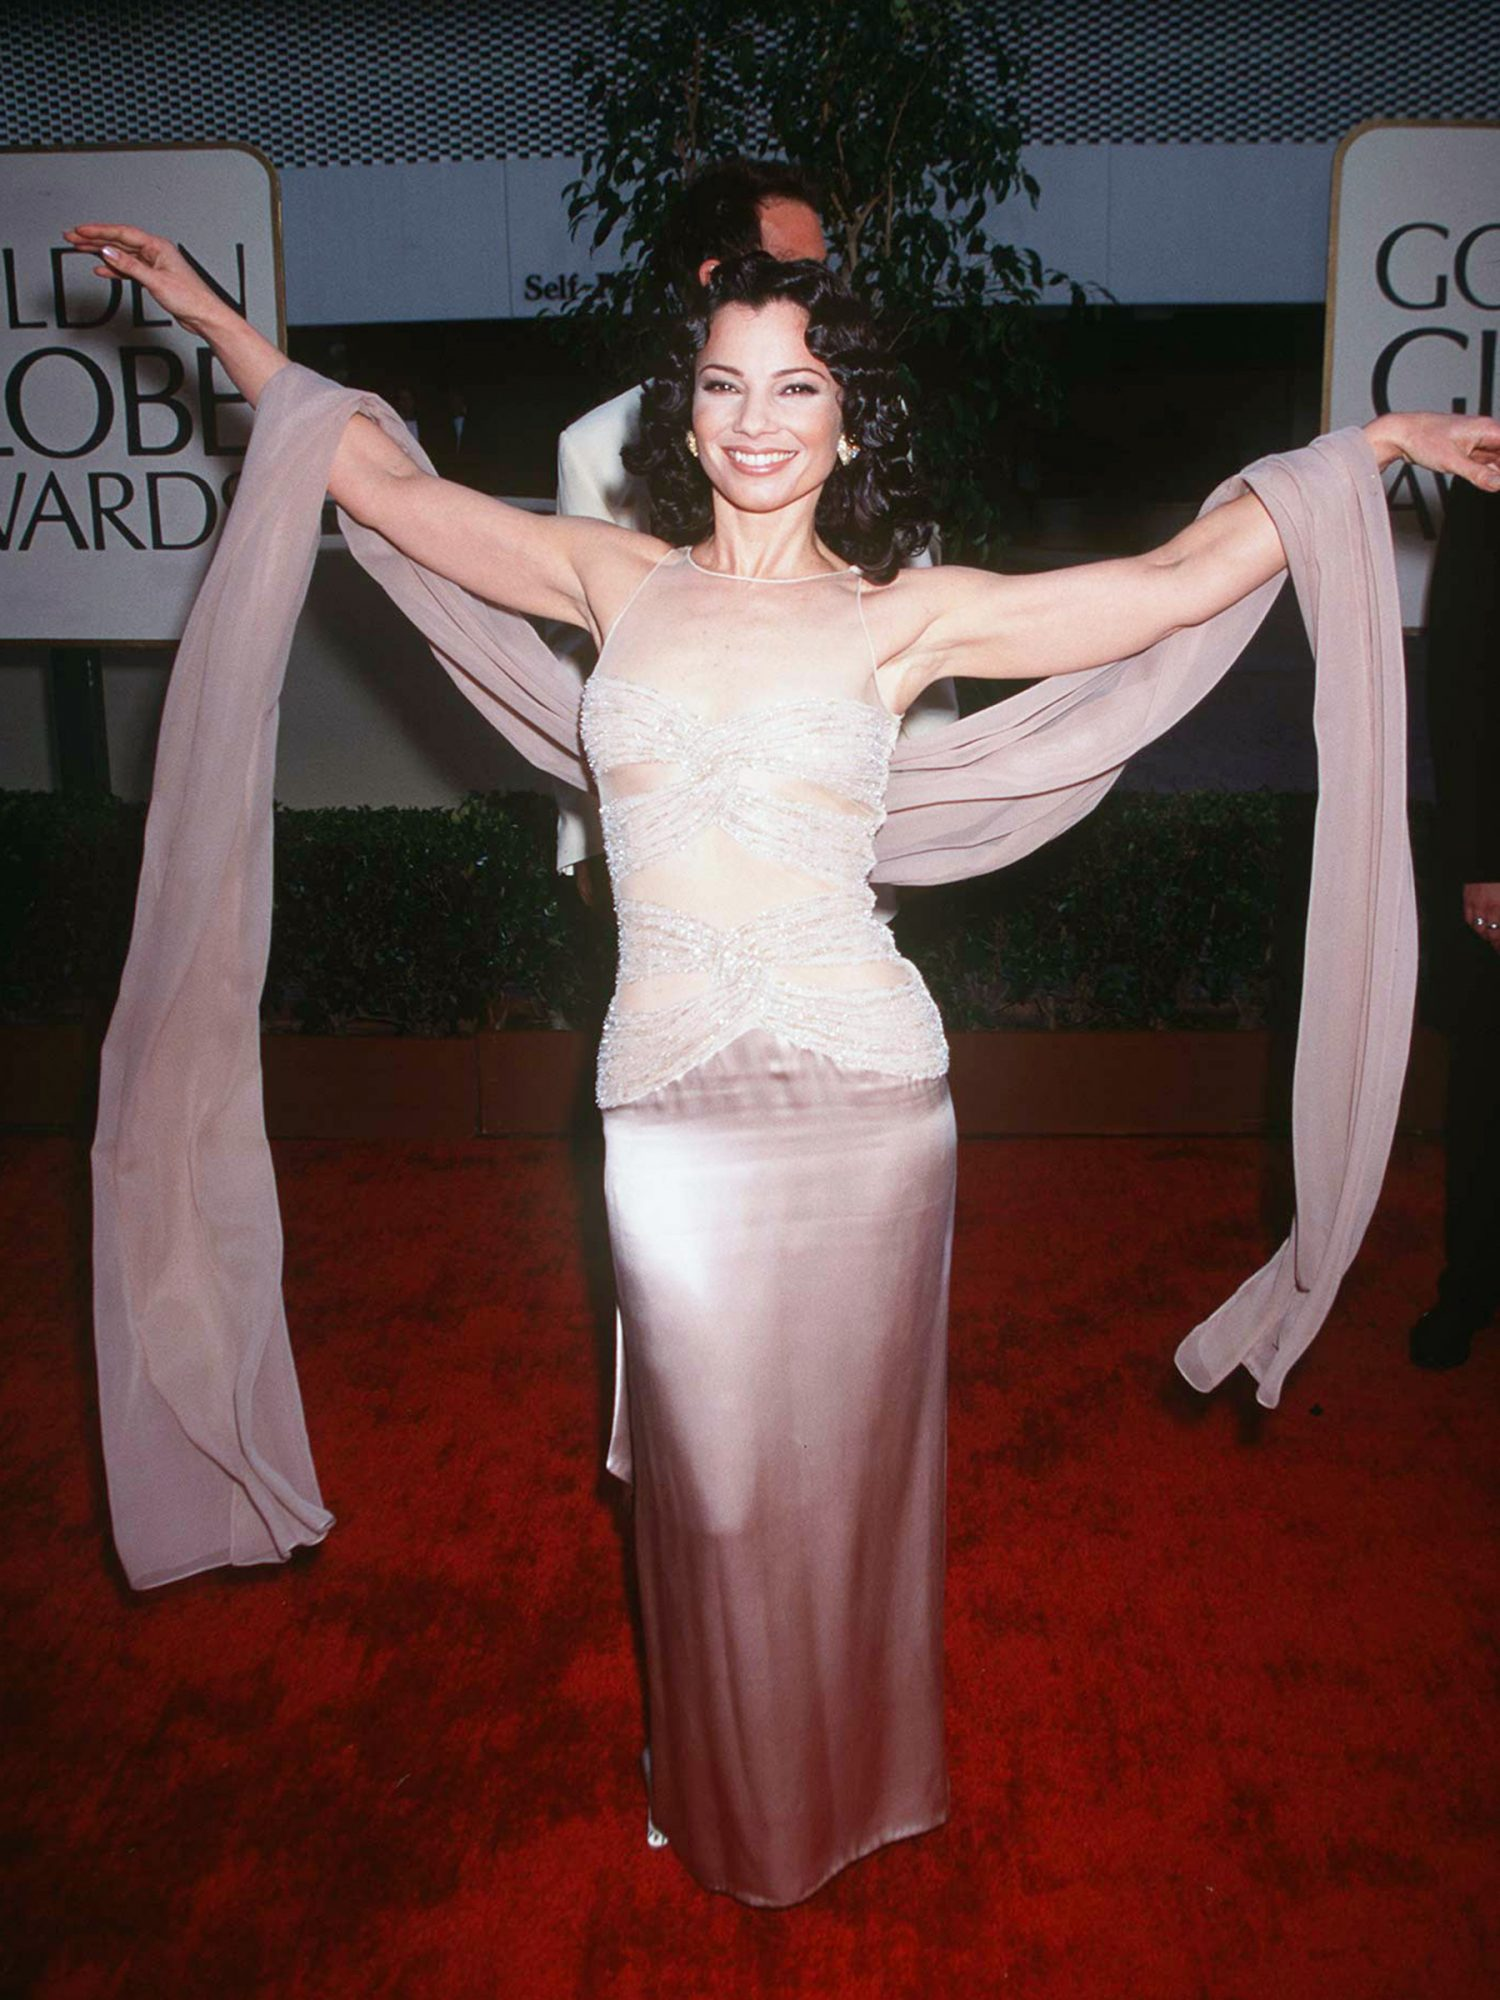 Best Actress in a Musical or Comedy Series Nominee Fran Drescher (The Nanny)